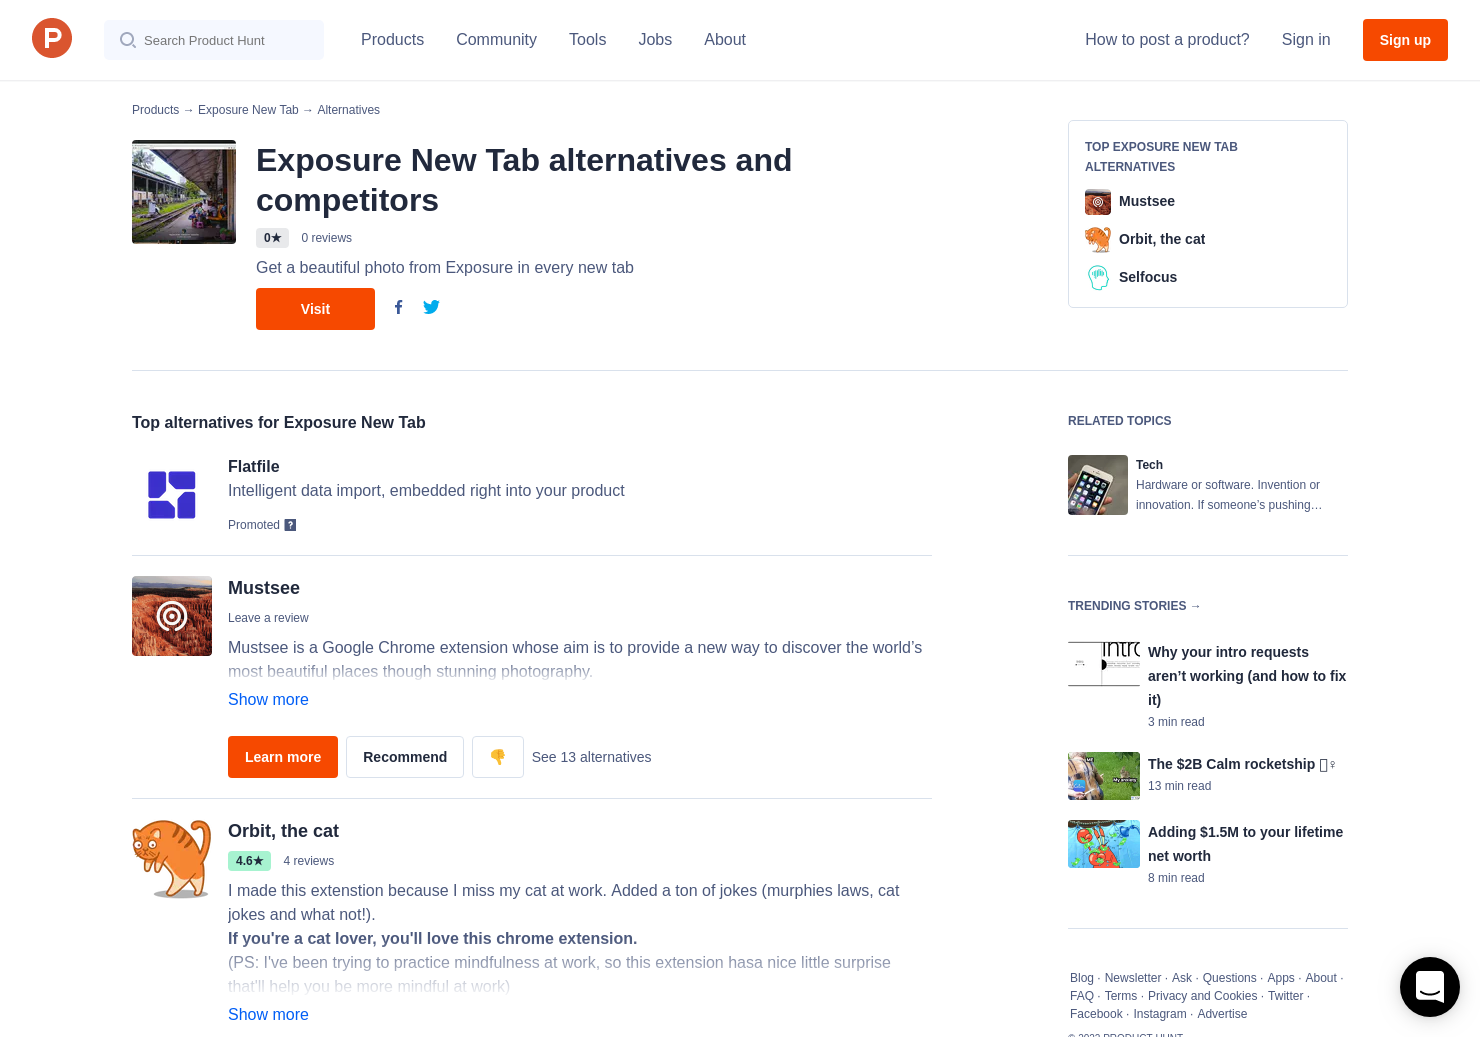 19 Alternatives to Exposure New Tab | Product Hunt